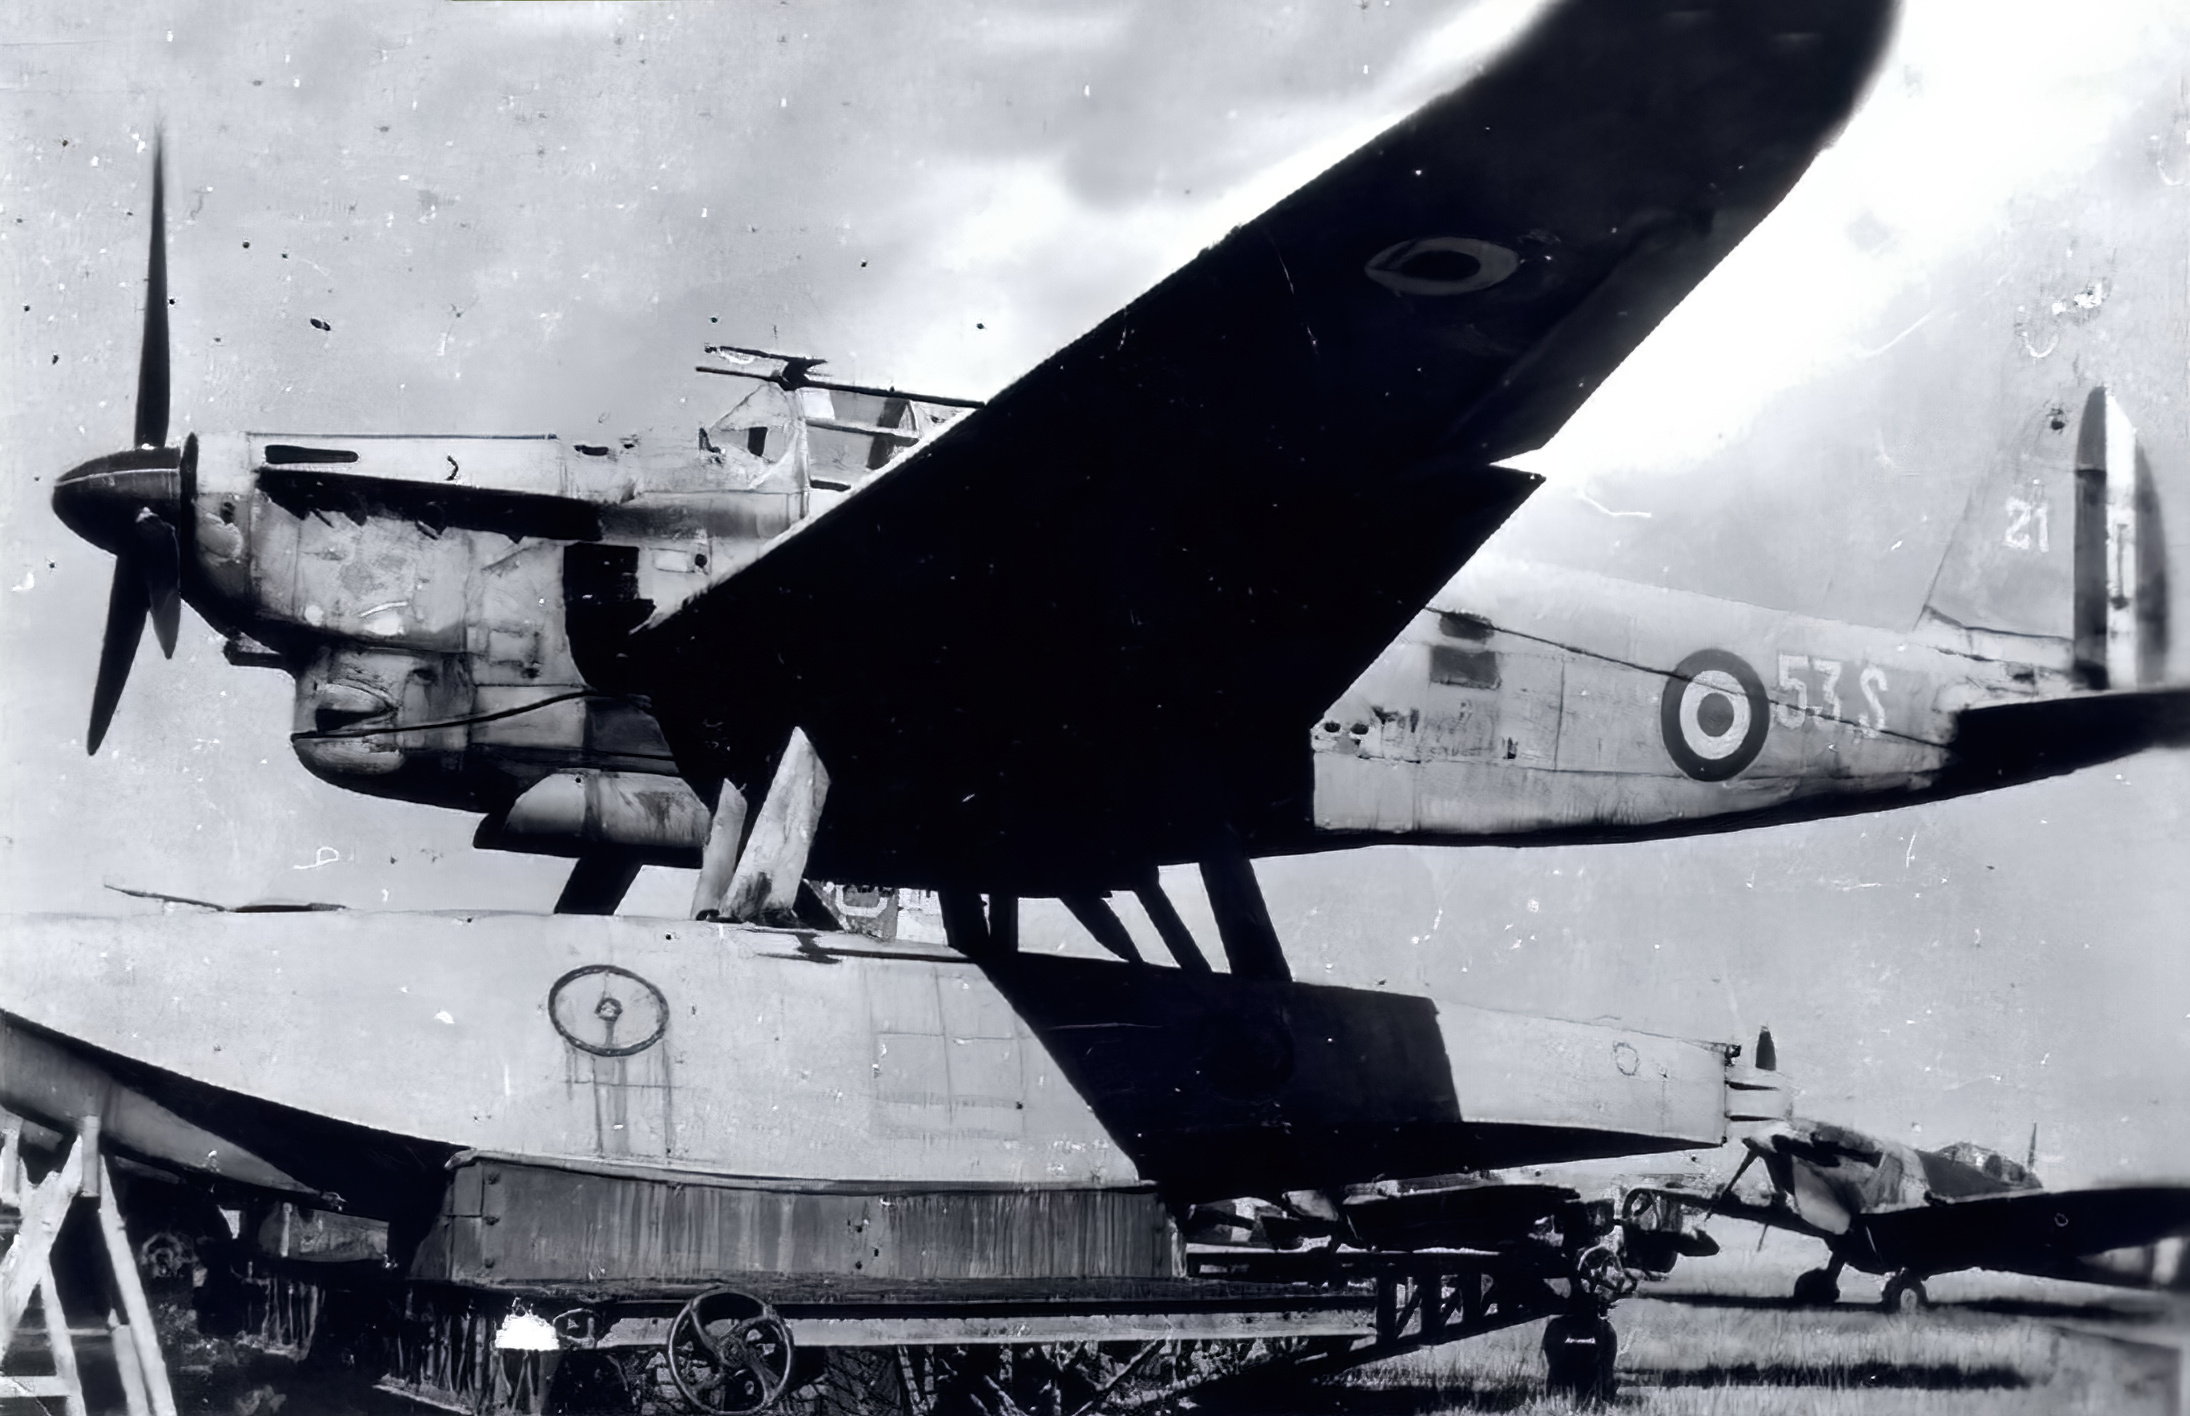 French Navy Latecoere Late 298 53S21 Torpedo bomber seaplane post war 1945 01